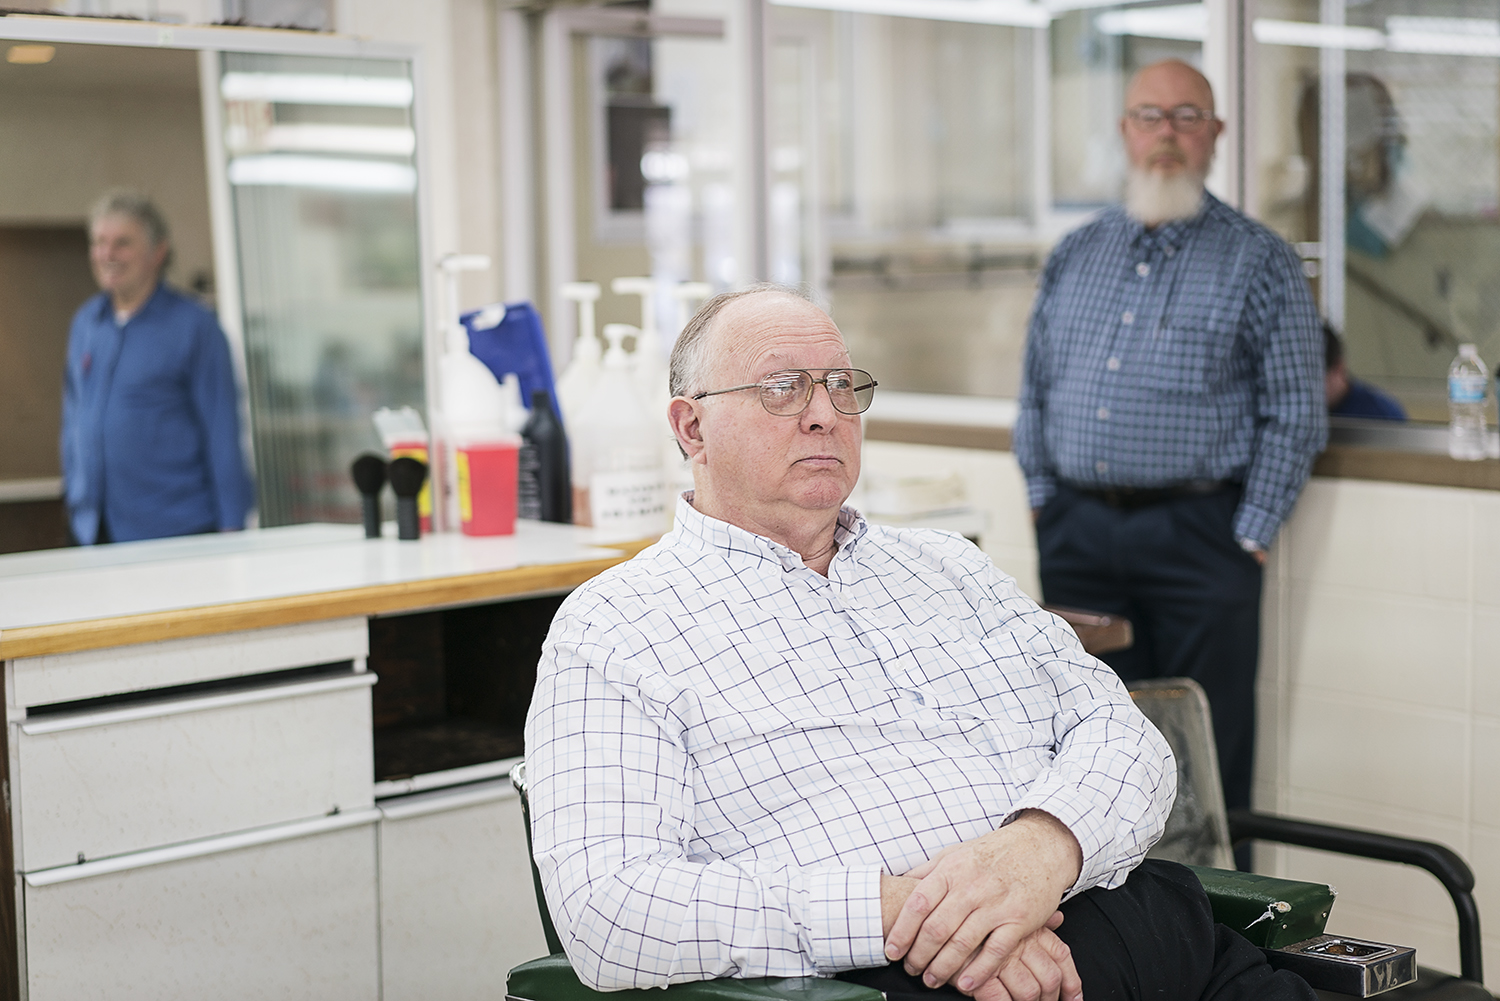 Flint, MI - Tuesday, February 6, 2018: Linden resident Larry Woodby, 70, an instructor at the Flint Institute of Barbering, sits in an empty chair flanked by the reflection of Bob Morey, 68, from Linden, Director of Education (left) and Ted Taylor, 66, from Flint Twp., (right), another of four instructors at the institute.Tim Galloway for FlintSide